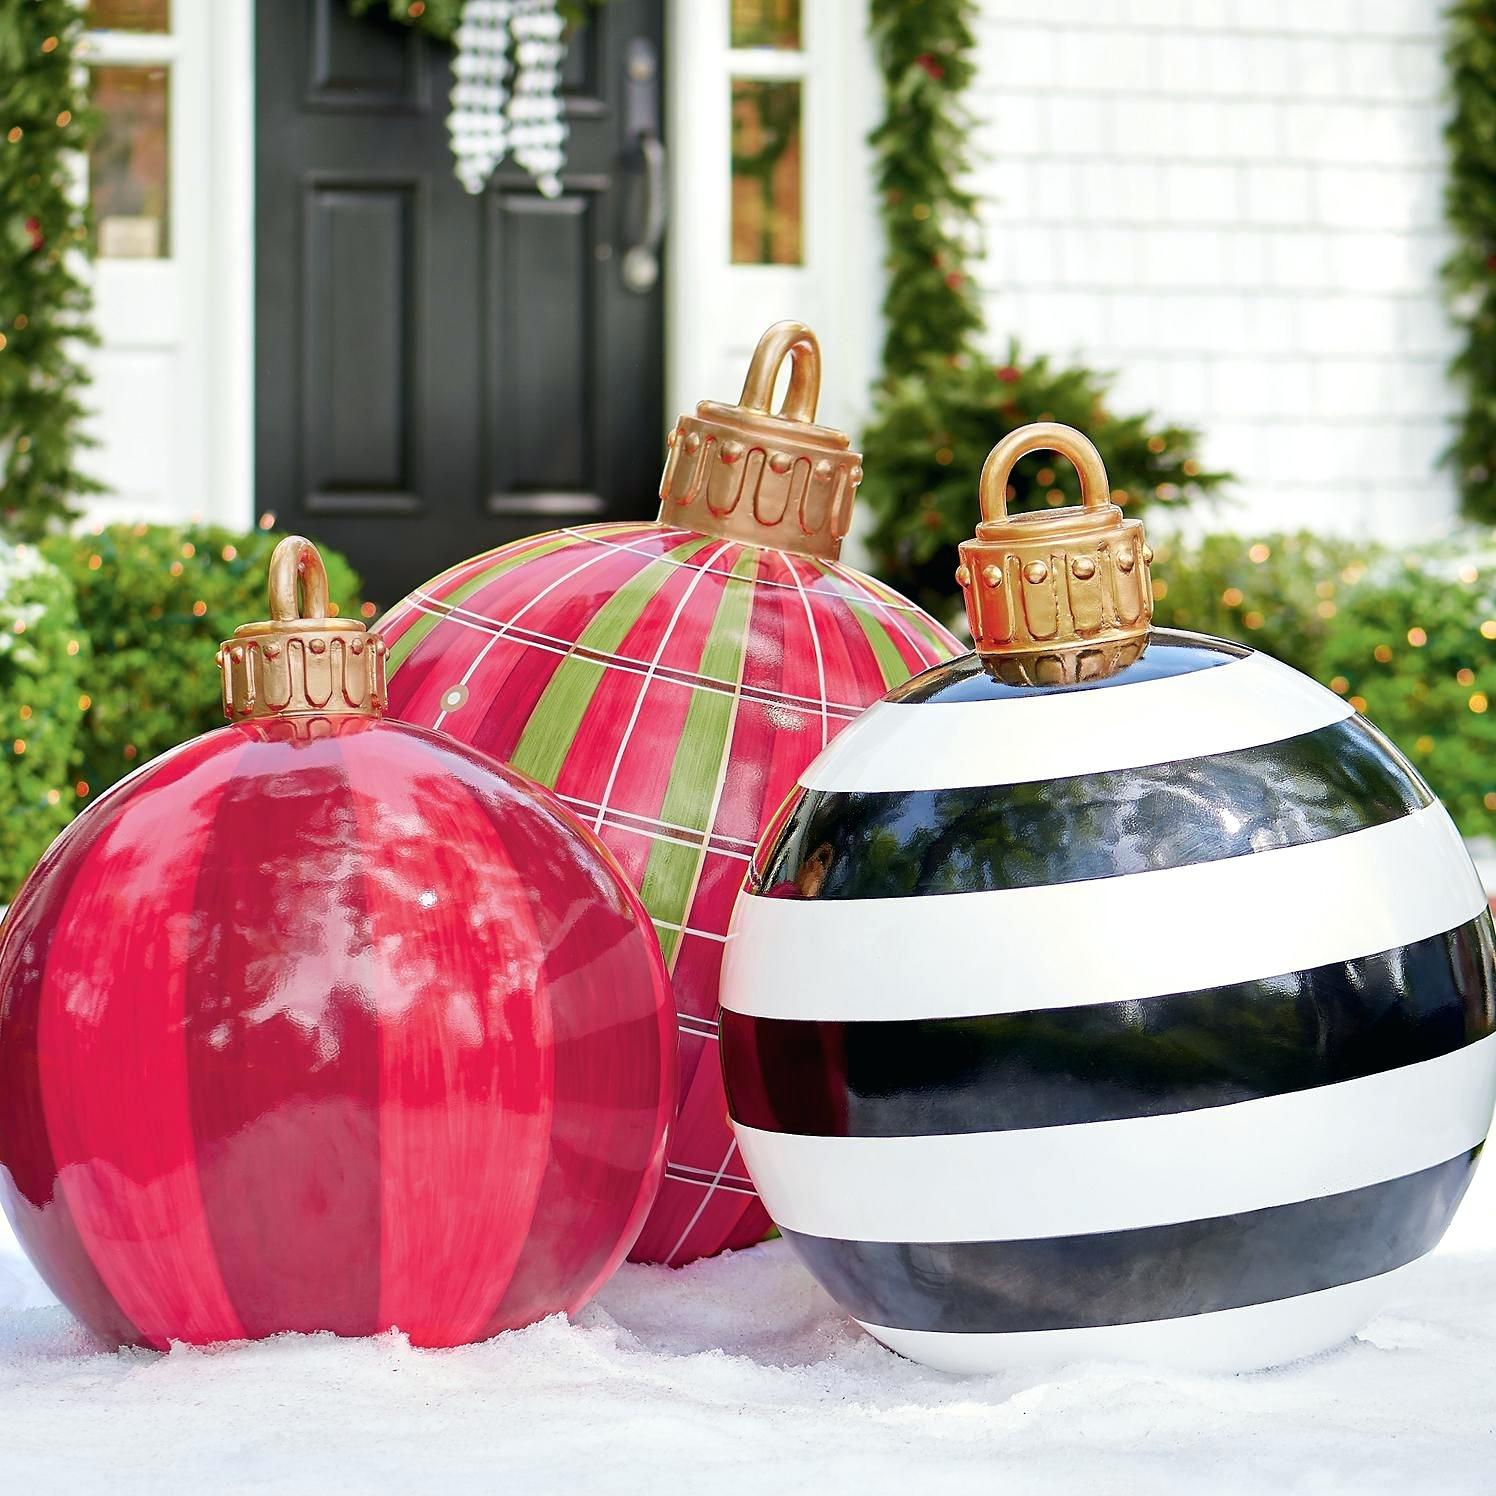 Cheap And Easy Outdoor Giant Christmas Ornaments (That Are ...